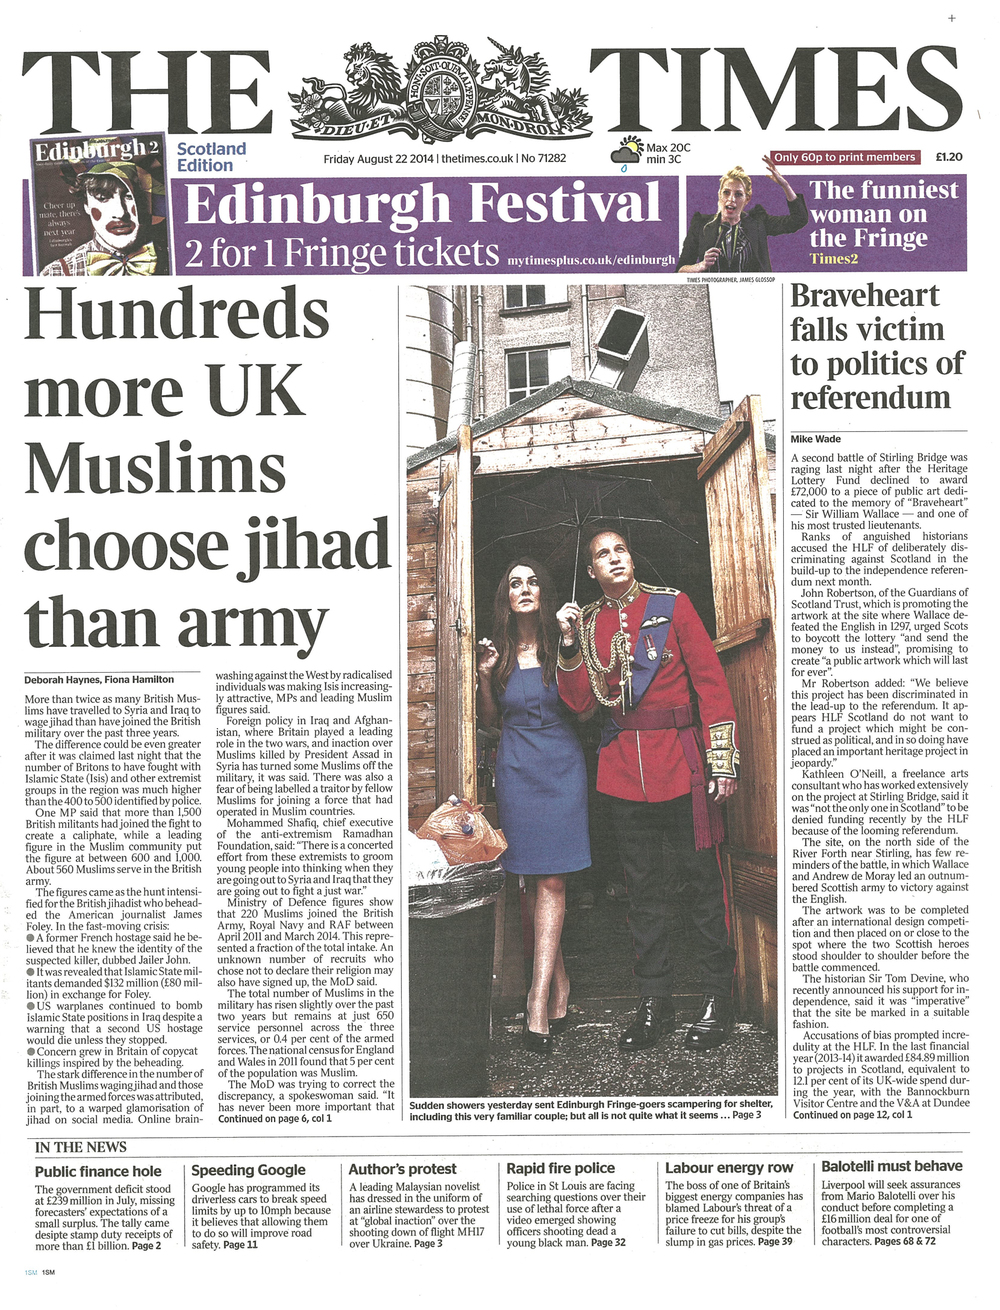 The Times Trashiata Front Cover 220814.jpg